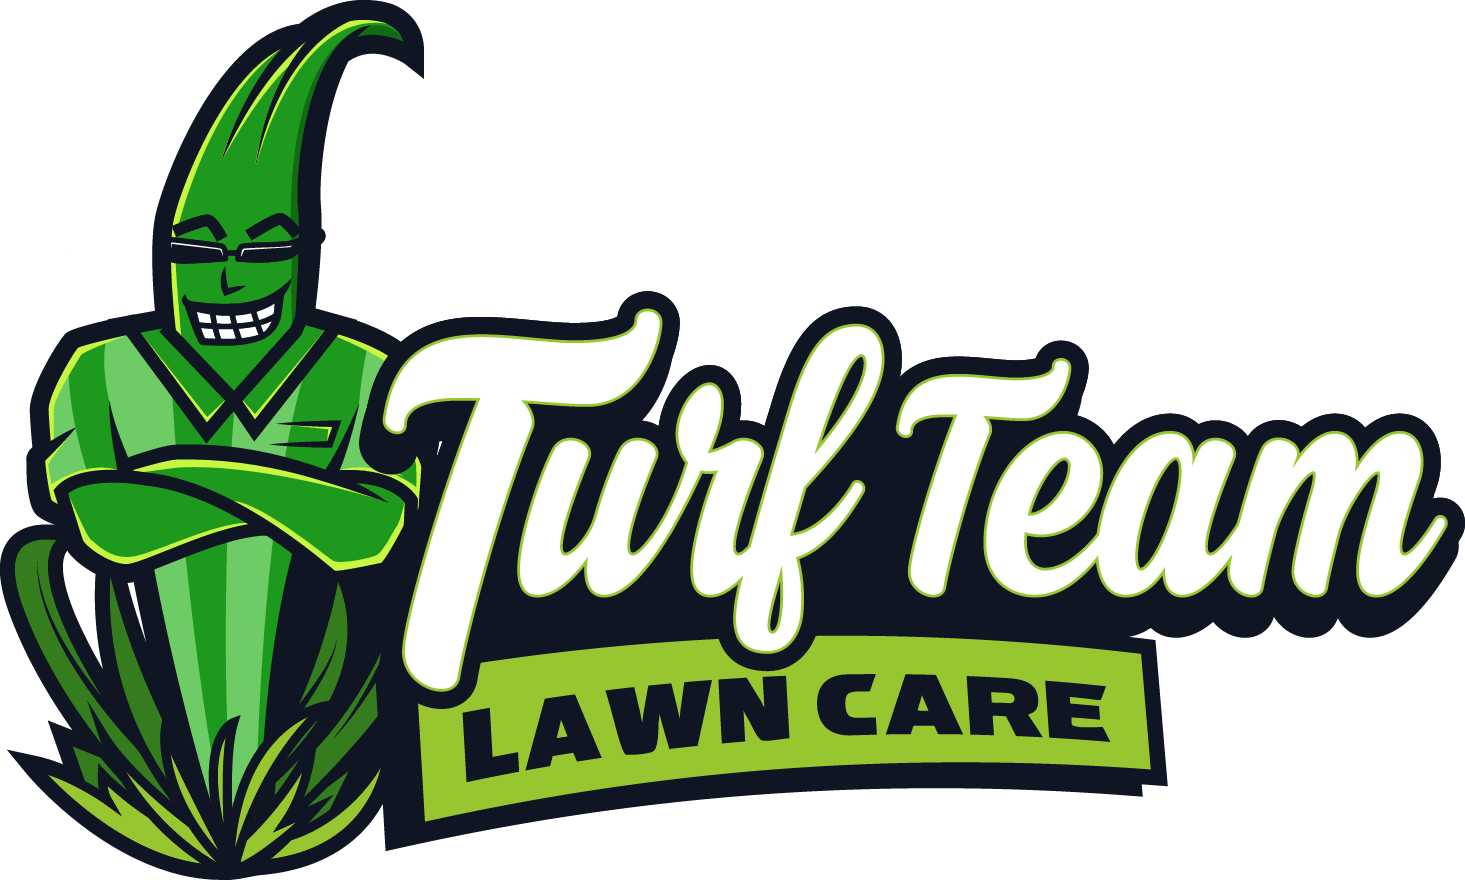 Turf Team Lawn Care lawn and landscaping